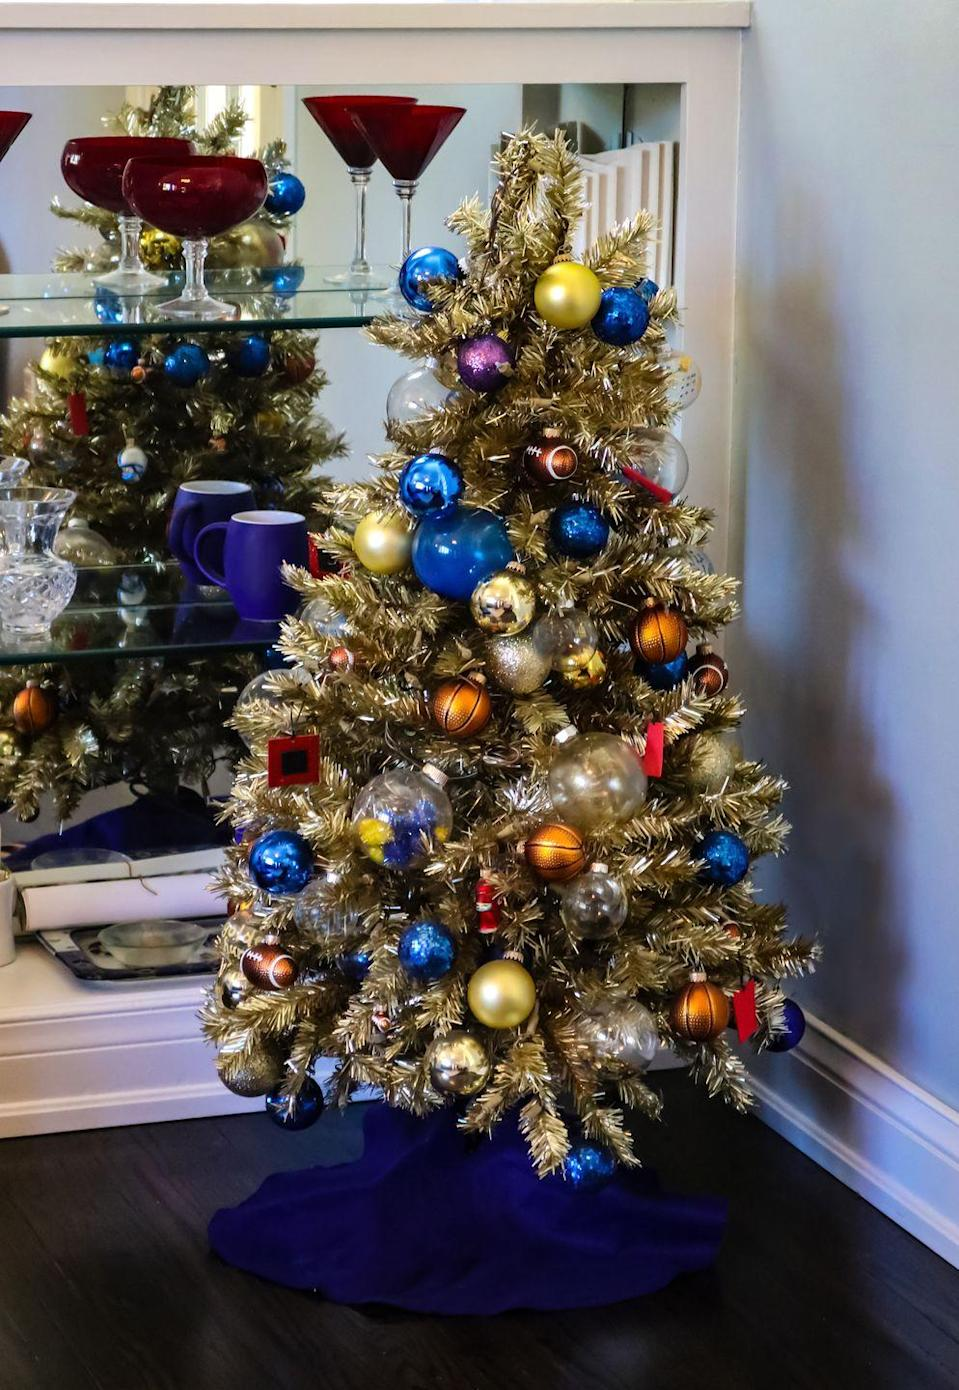 <p>Who says Christmas can't be sporty? This vibrant and festive sports-inspired tree will score big on style while making fans proud.</p>